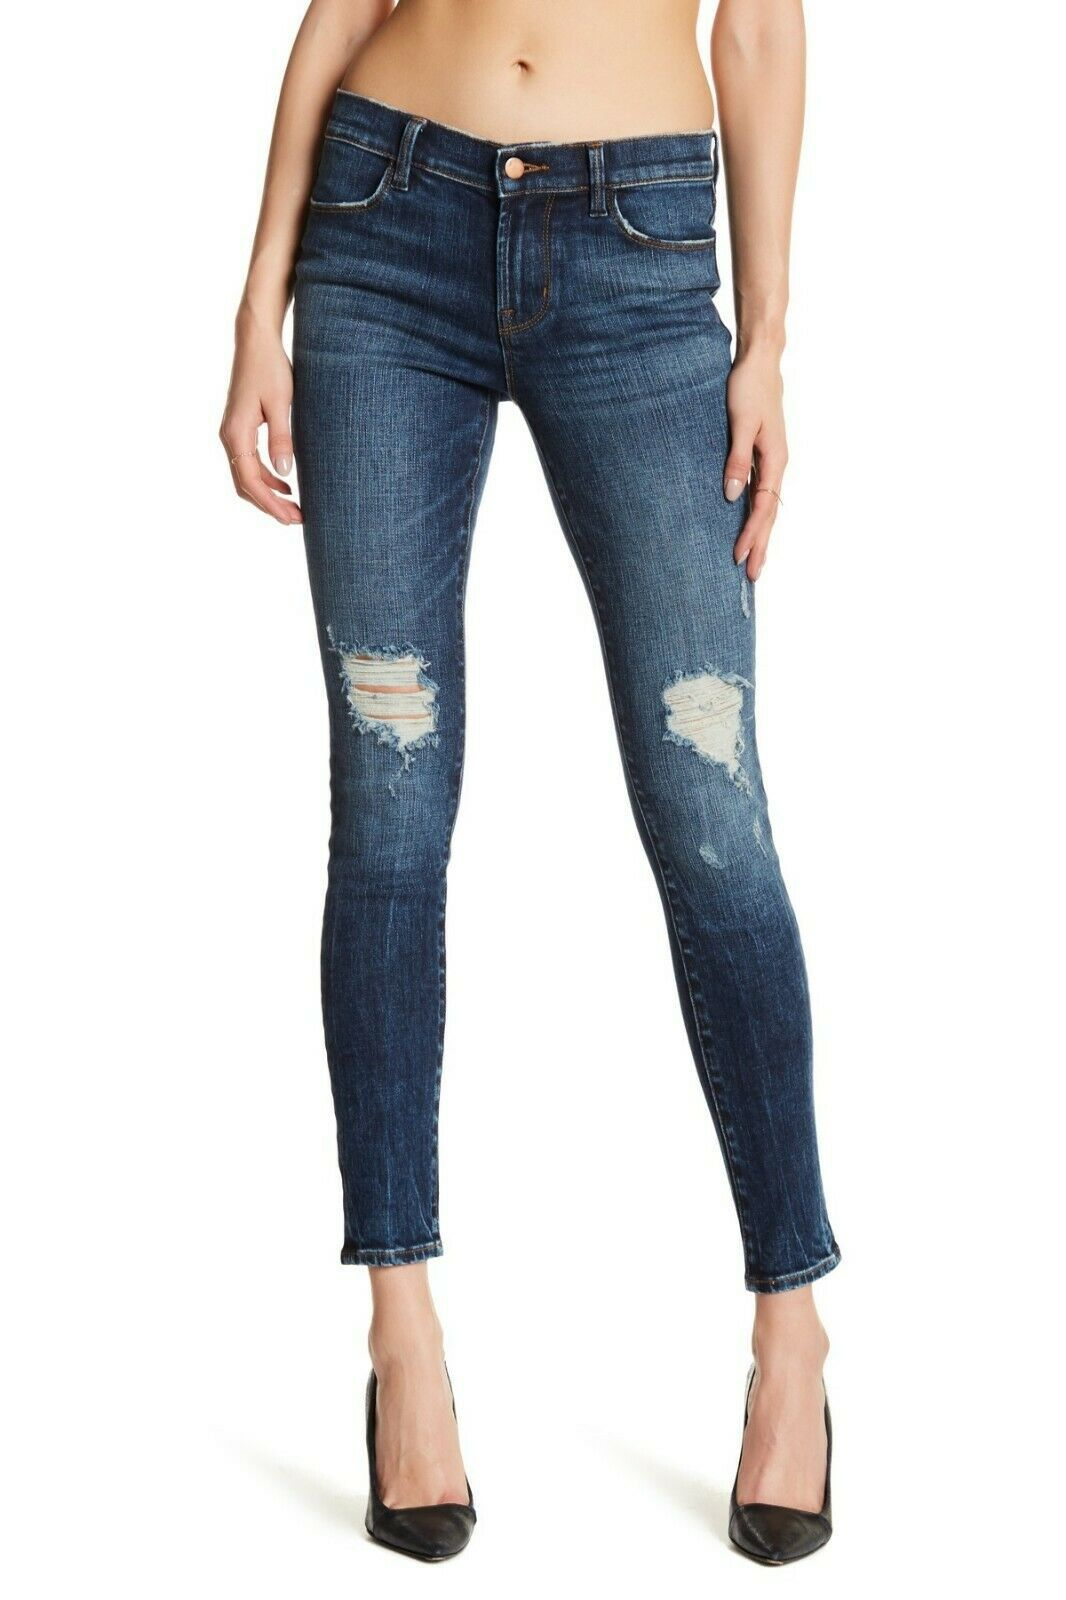 $228 J Brand - 620 Mid-Rise Super Skinny in Dark Erosion (Destroyed) - Size 26